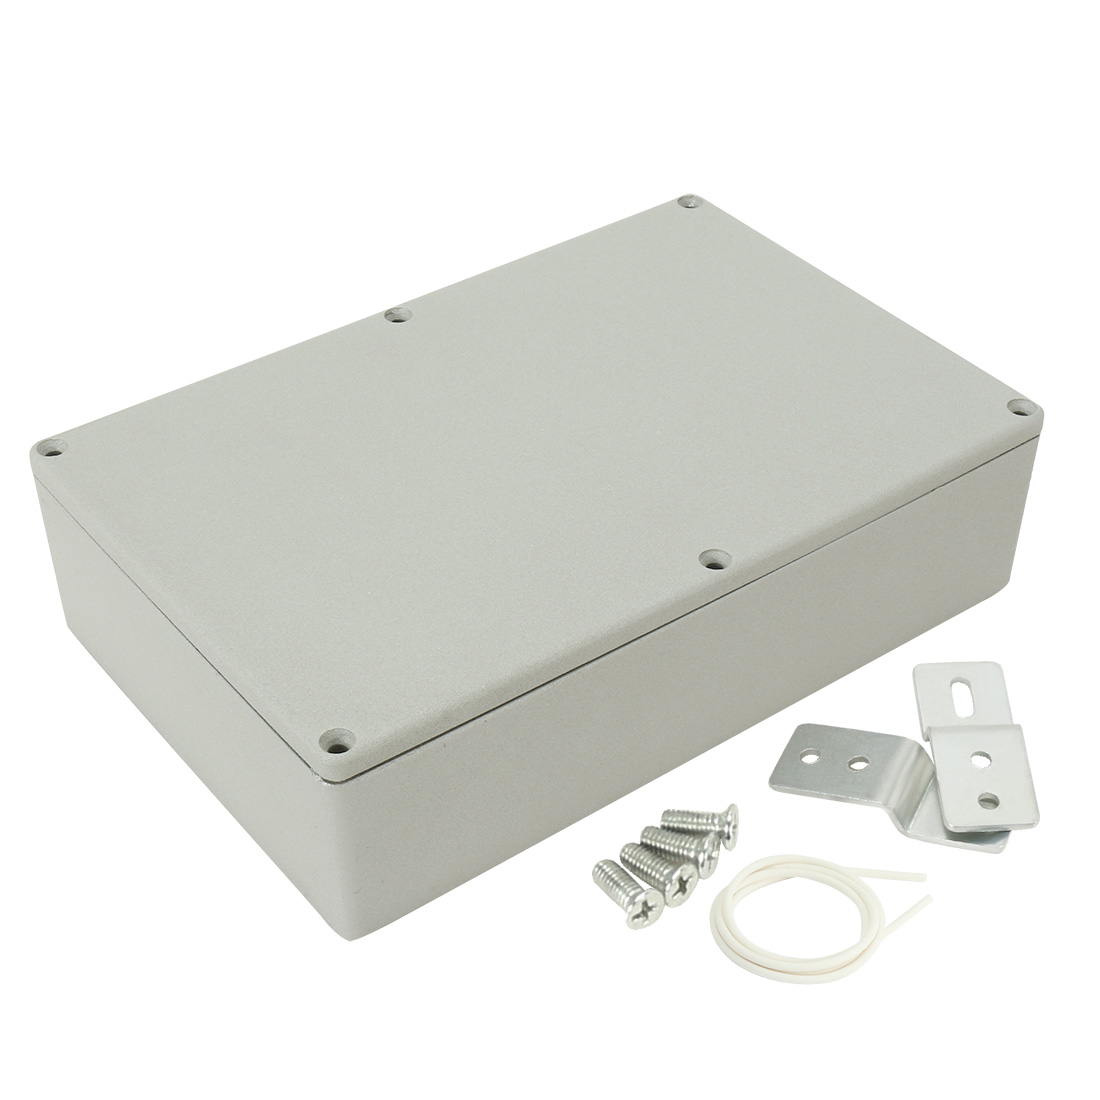 """8.7""""x5.7""""x2.2""""(222mmx145mmx55mm) Aluminum Junction Box Universal Electric Project Enclosure"""